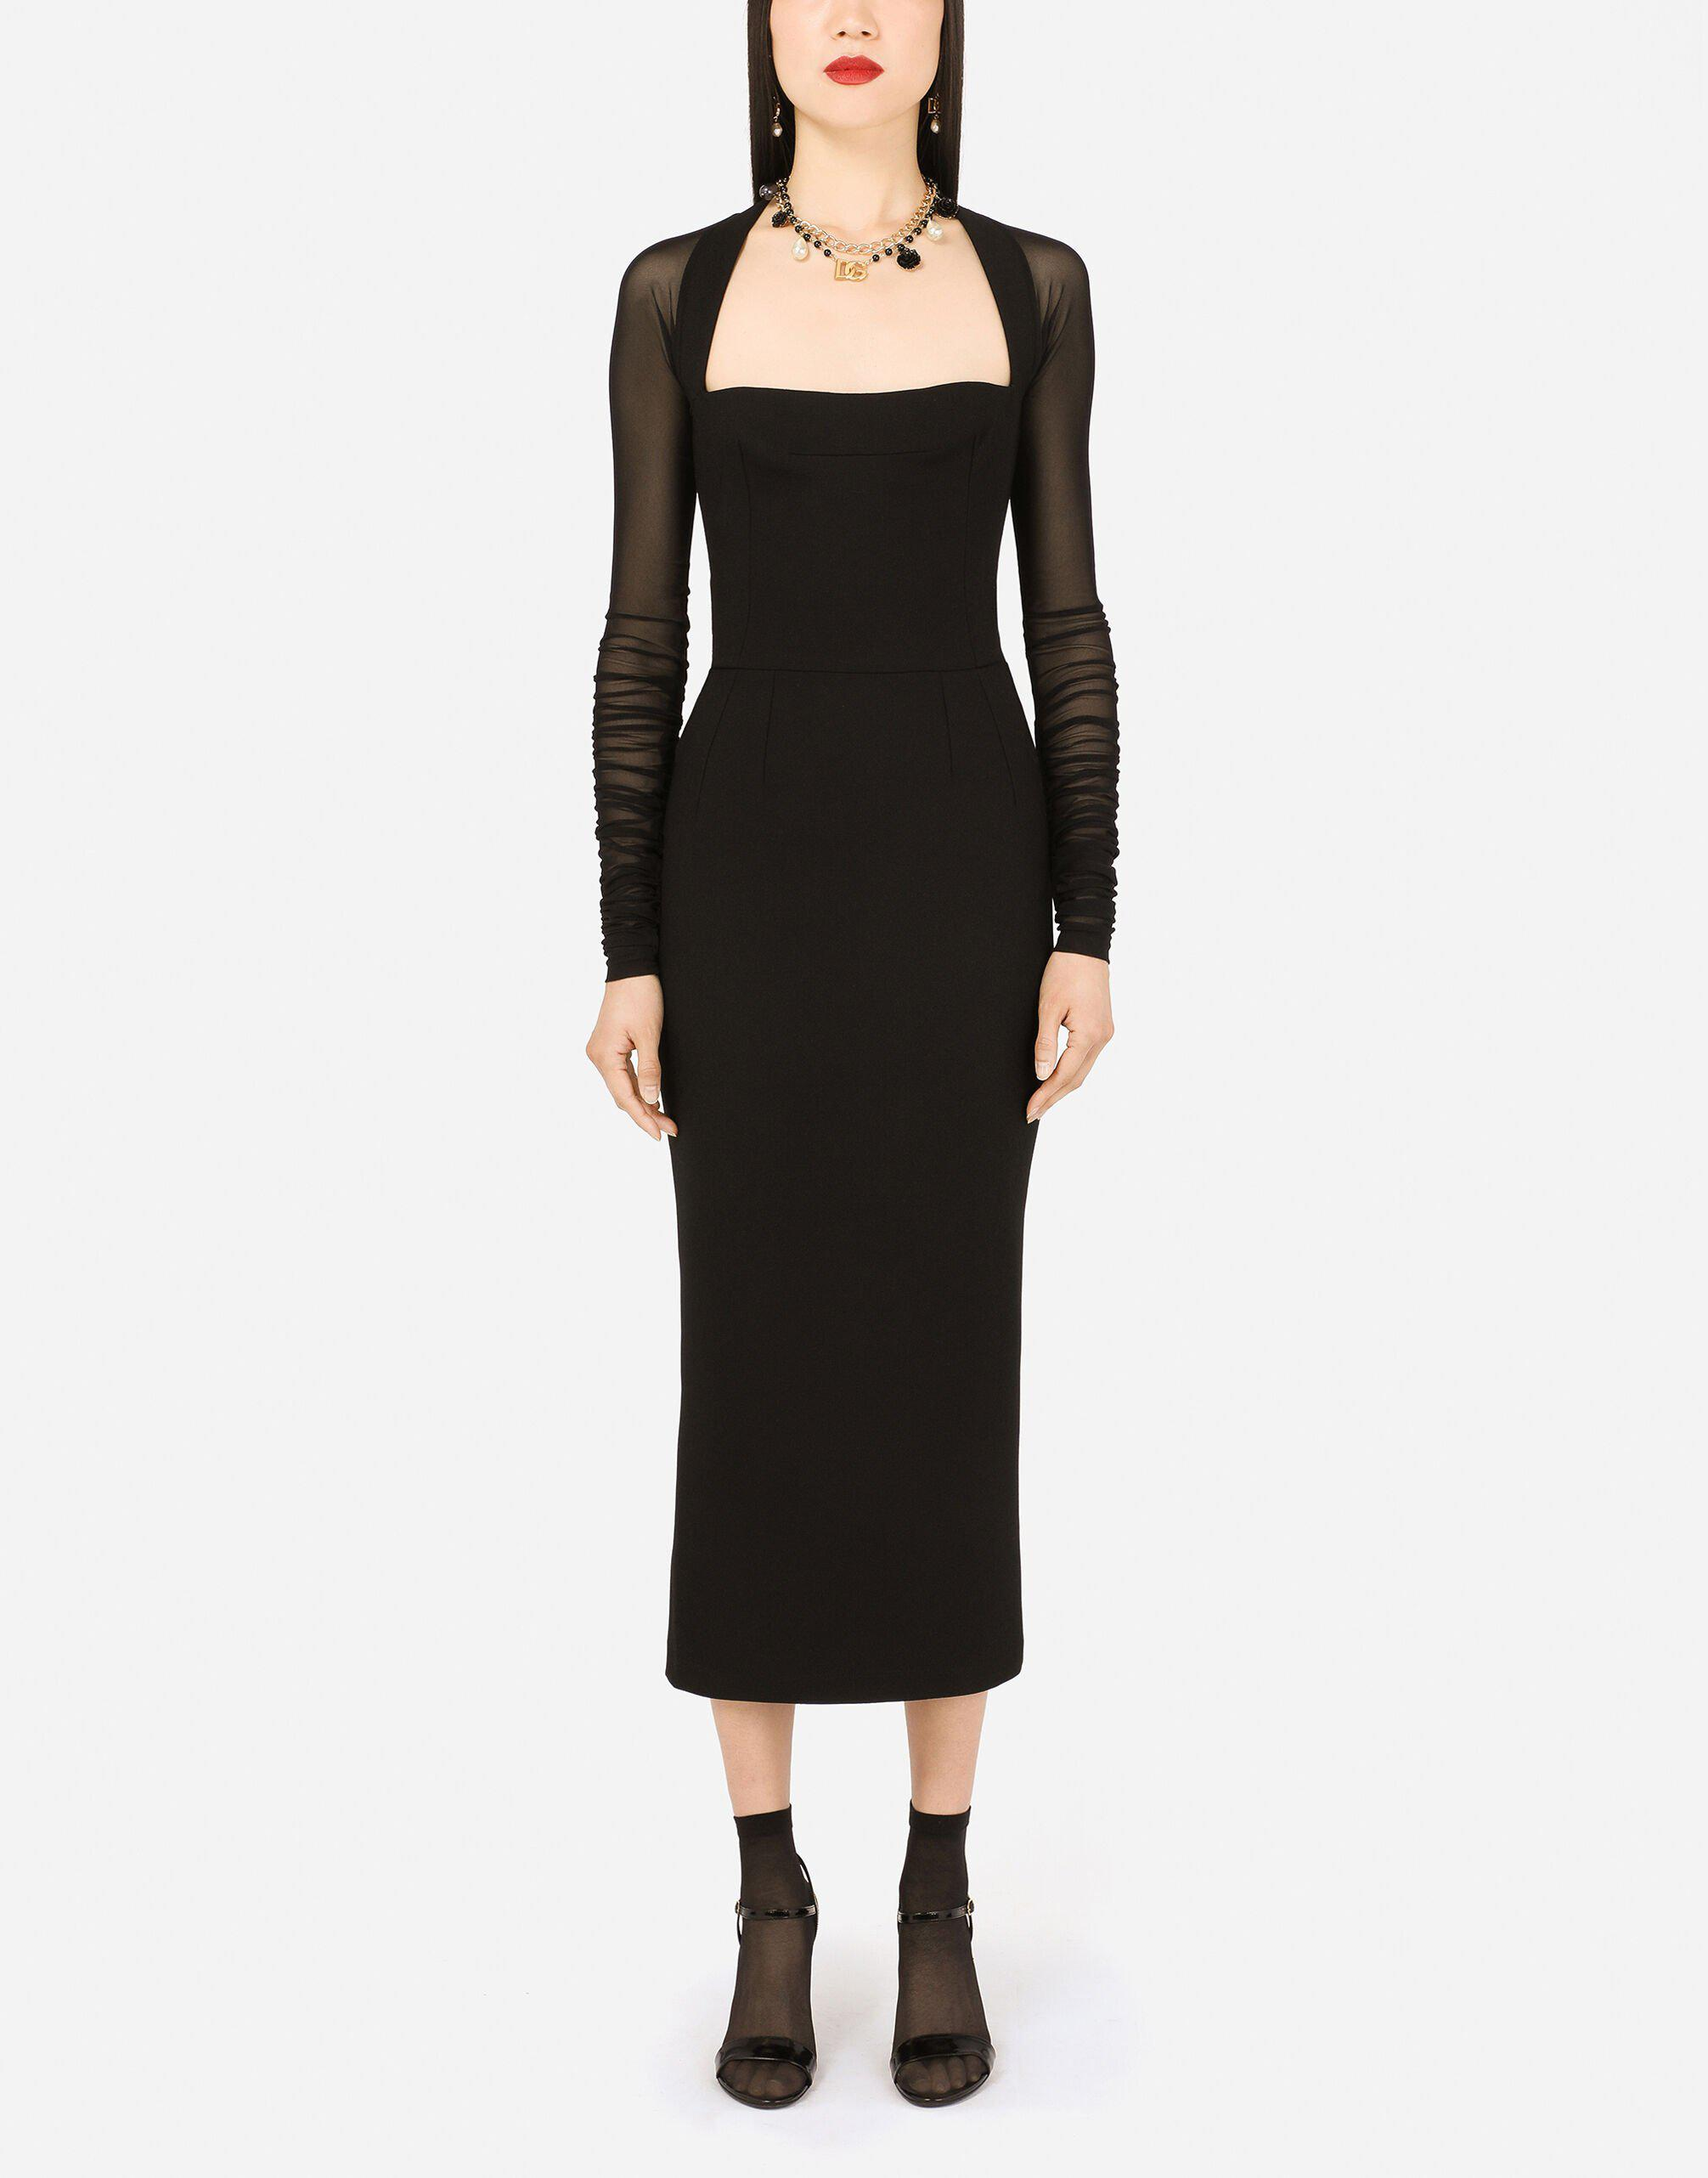 Sable calf-length dress with tulle sleeves